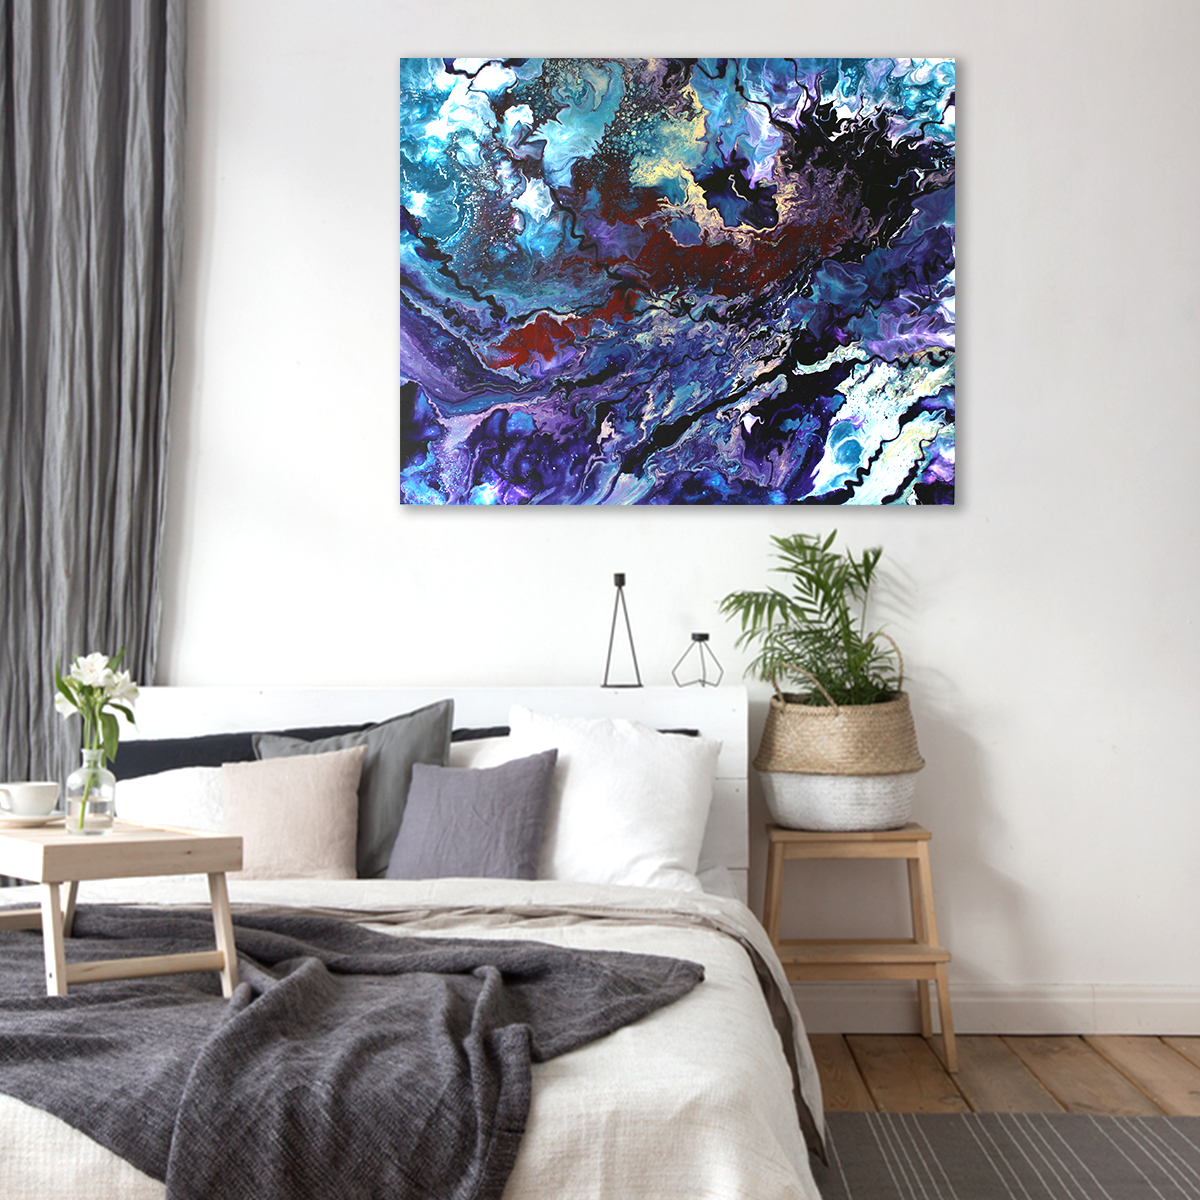 abstract schilderij Impulsion in een slaapkamer